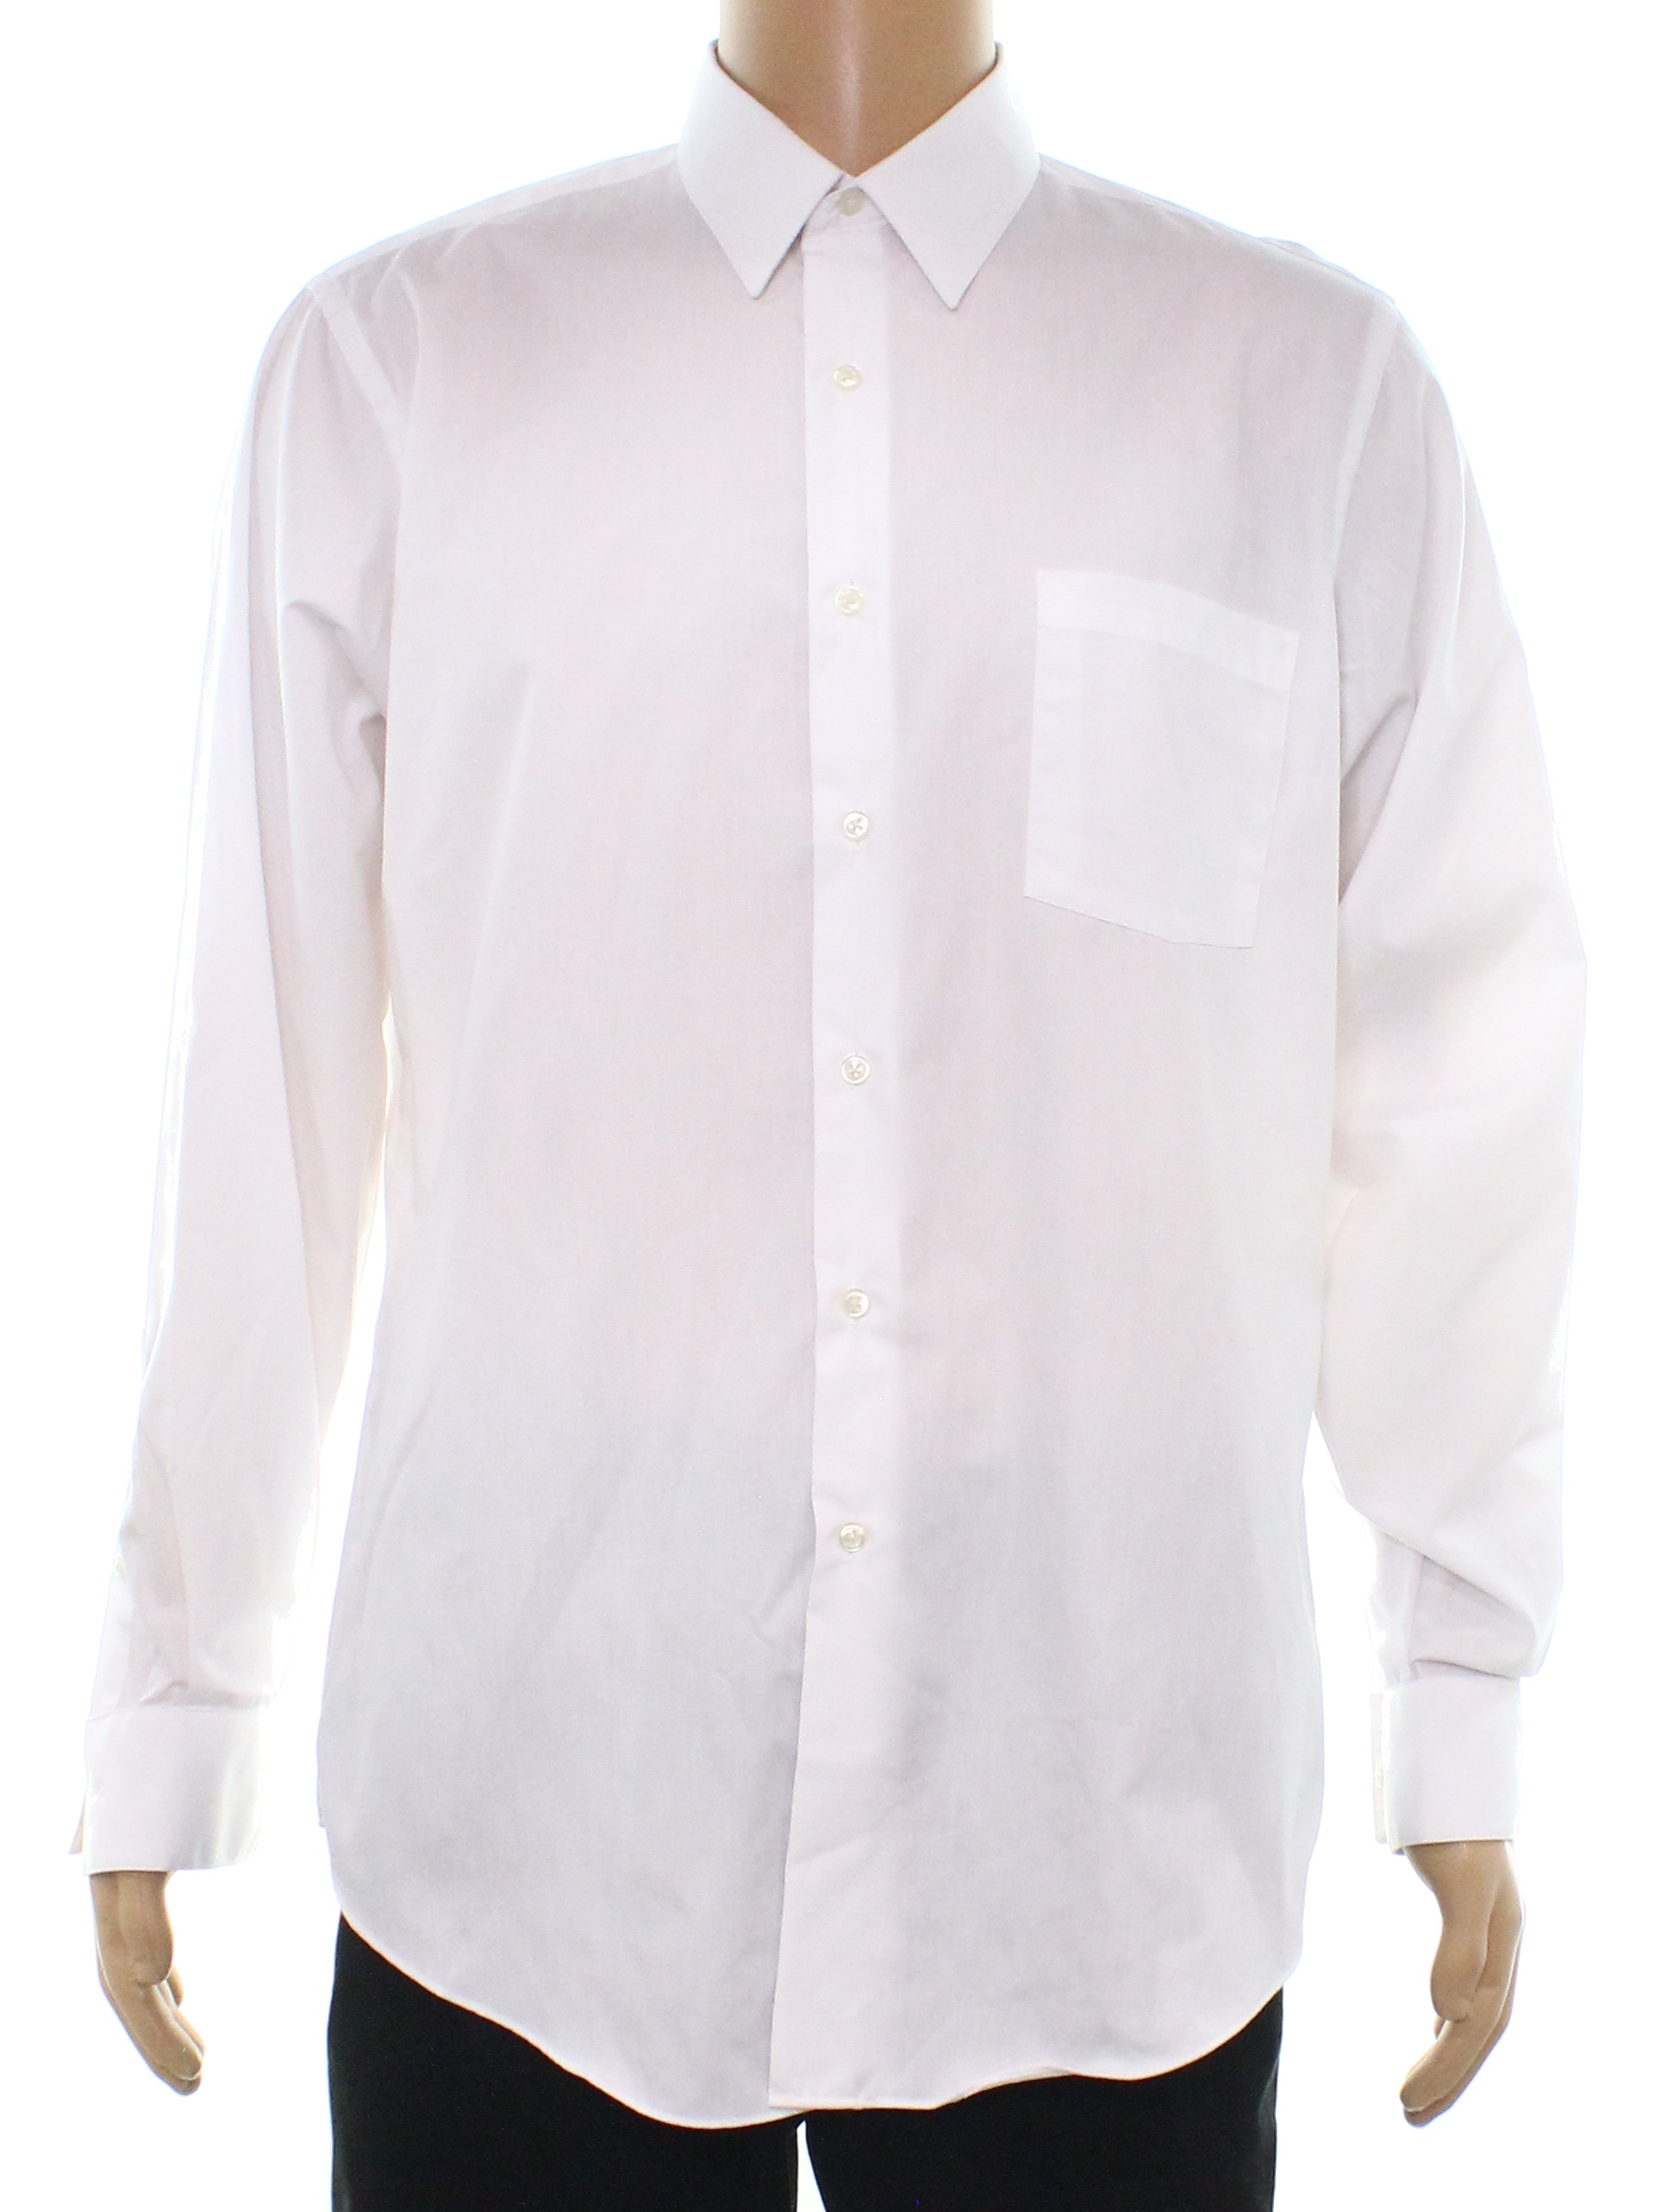 Van Heusen New Bright White Mens Size 16 Solid Slim Fit Dress Shirt